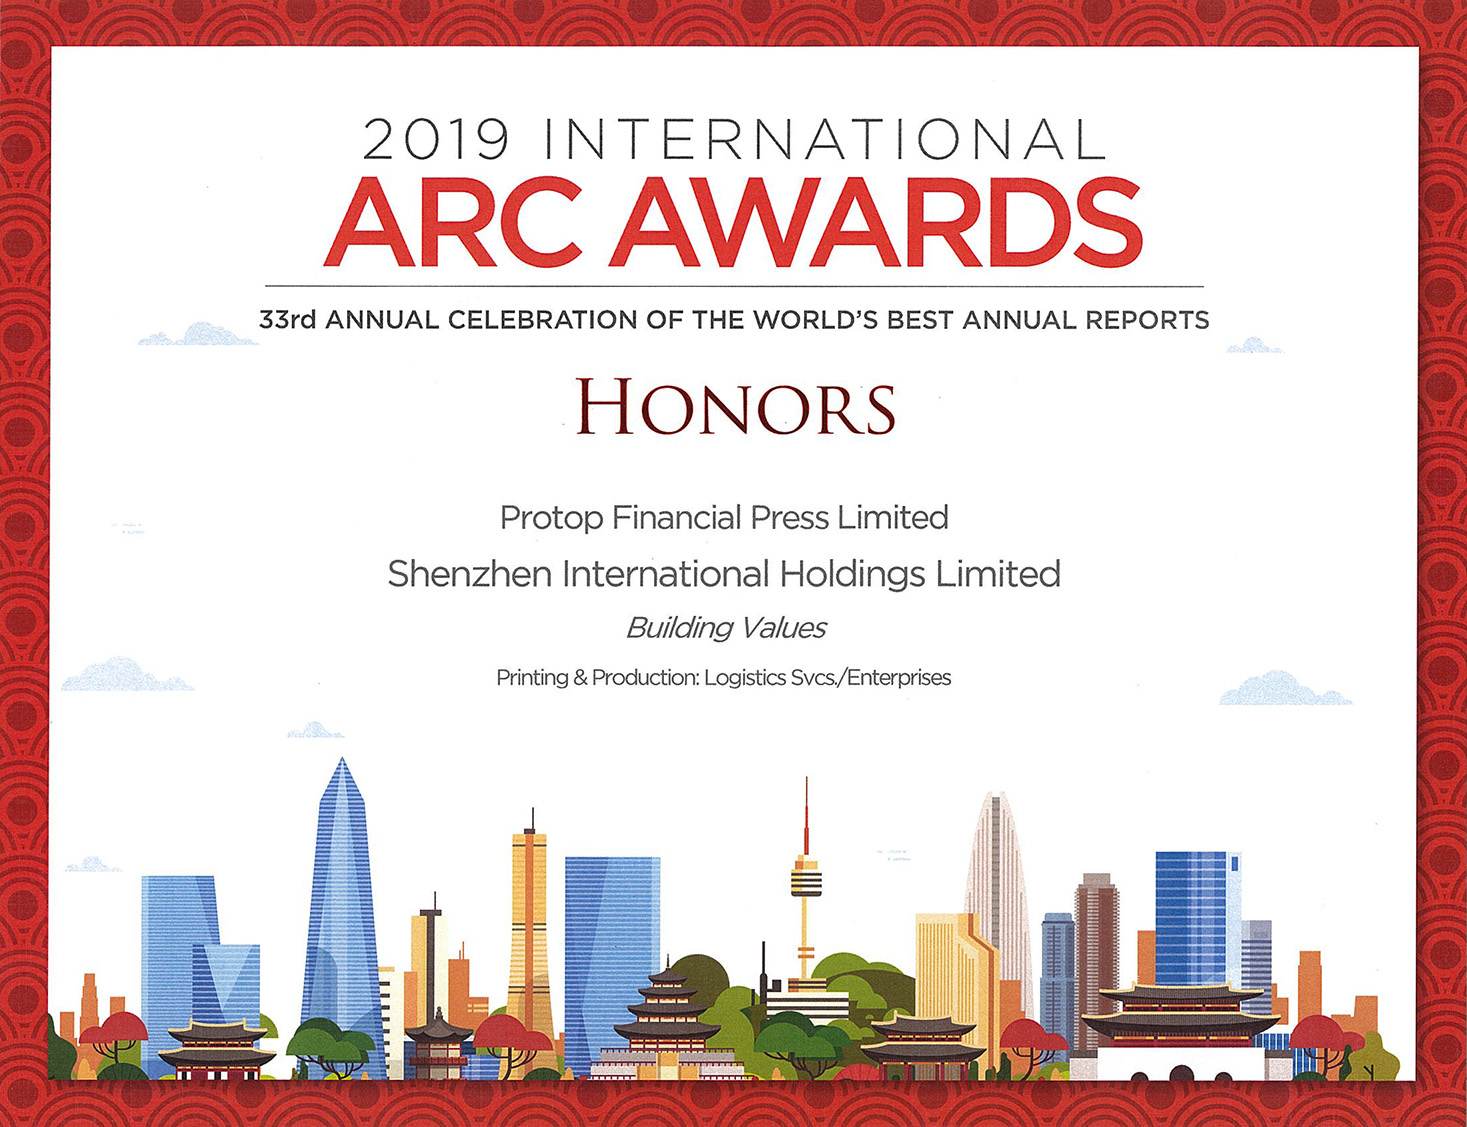 深圳國際控股有限公司 – 2019 ARC AWARDS HONORS Printing & Production: Logistics Svcs/Enterprises